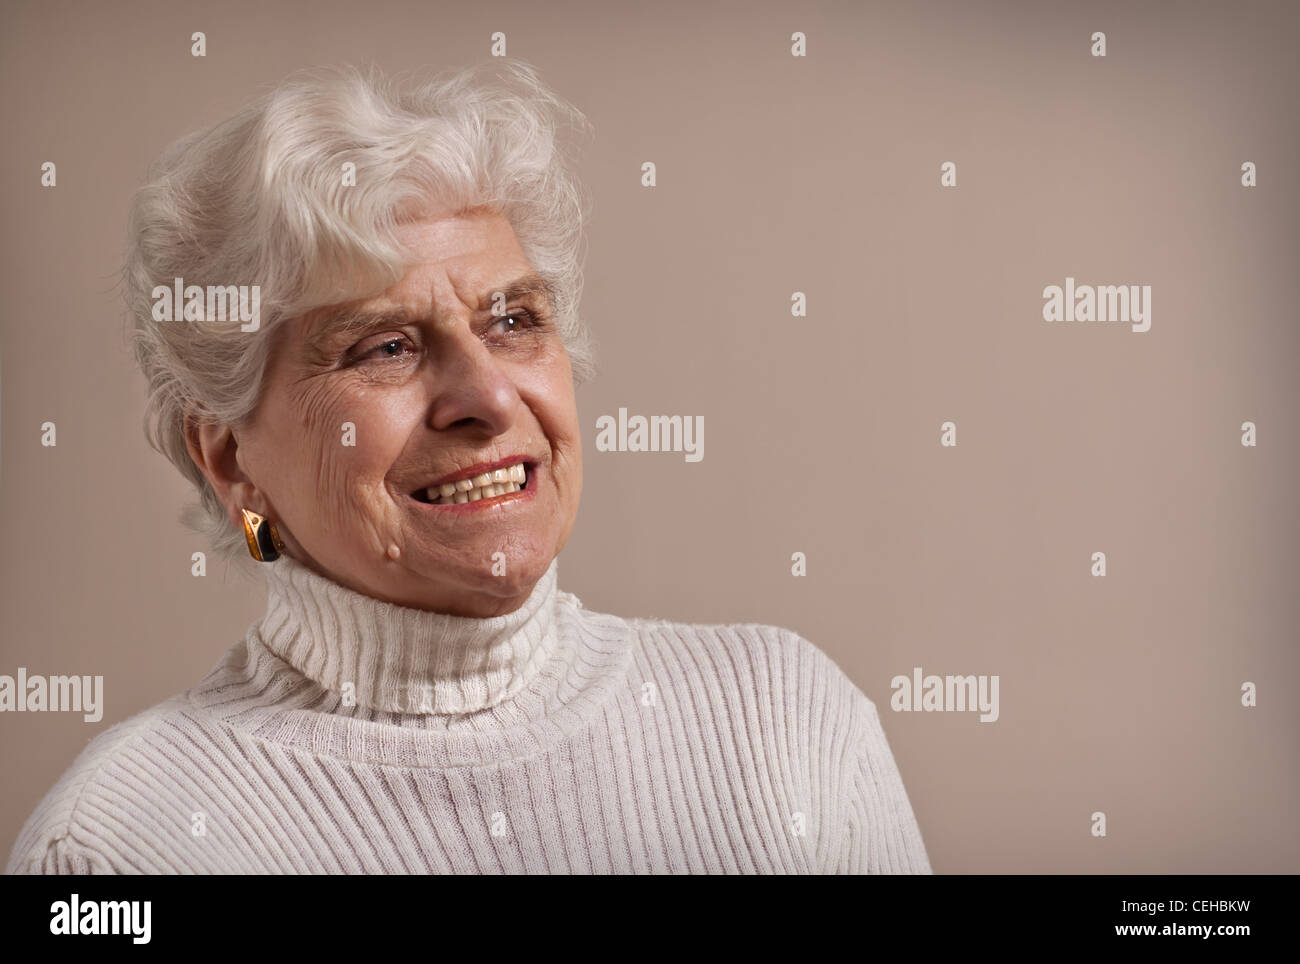 Senior lady portrait, smiling with copy space. - Stock Image